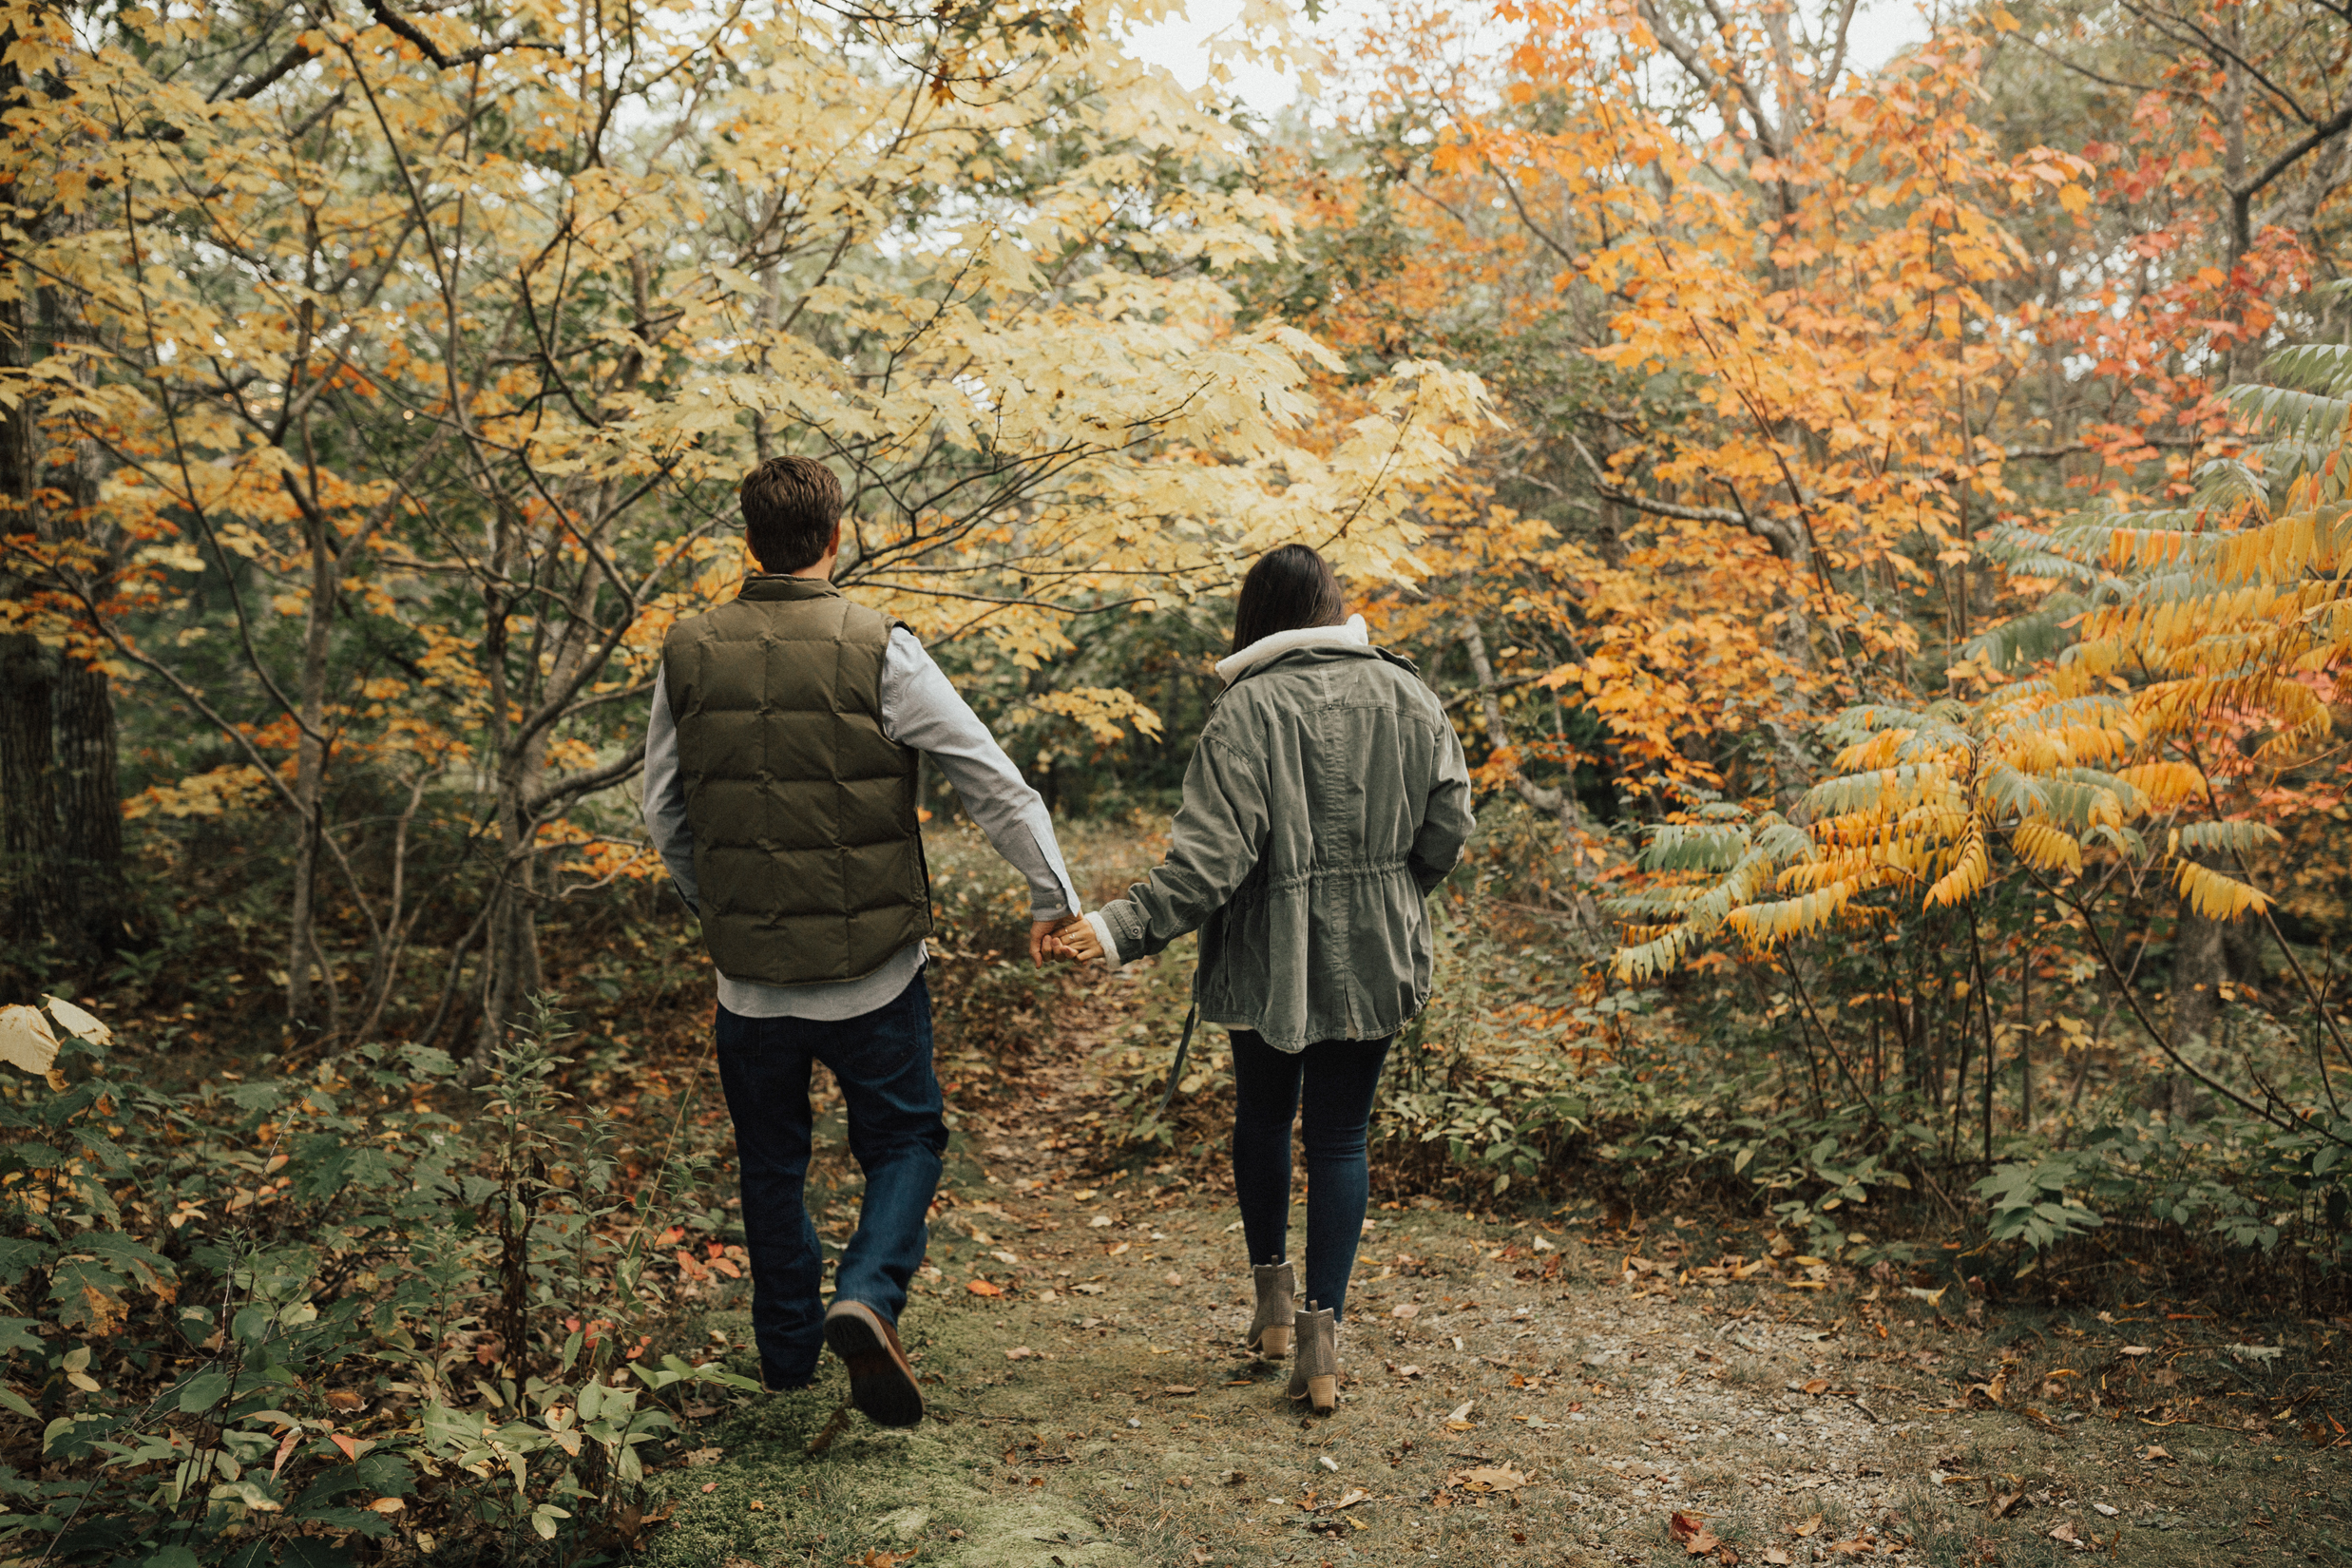 Featured On Anthropologie | Shades of Fall with Couple Entrepreneurs of Dérive Colective | Fall Fashion feature with Anthropologie | Fall Trends with Travel Blogger Elana Jadallah | Best Looks of Fall with Anthropologie | Exploring Camden Maine | Travel Diary Camden Maine via @elanaloo + elanaloo.com